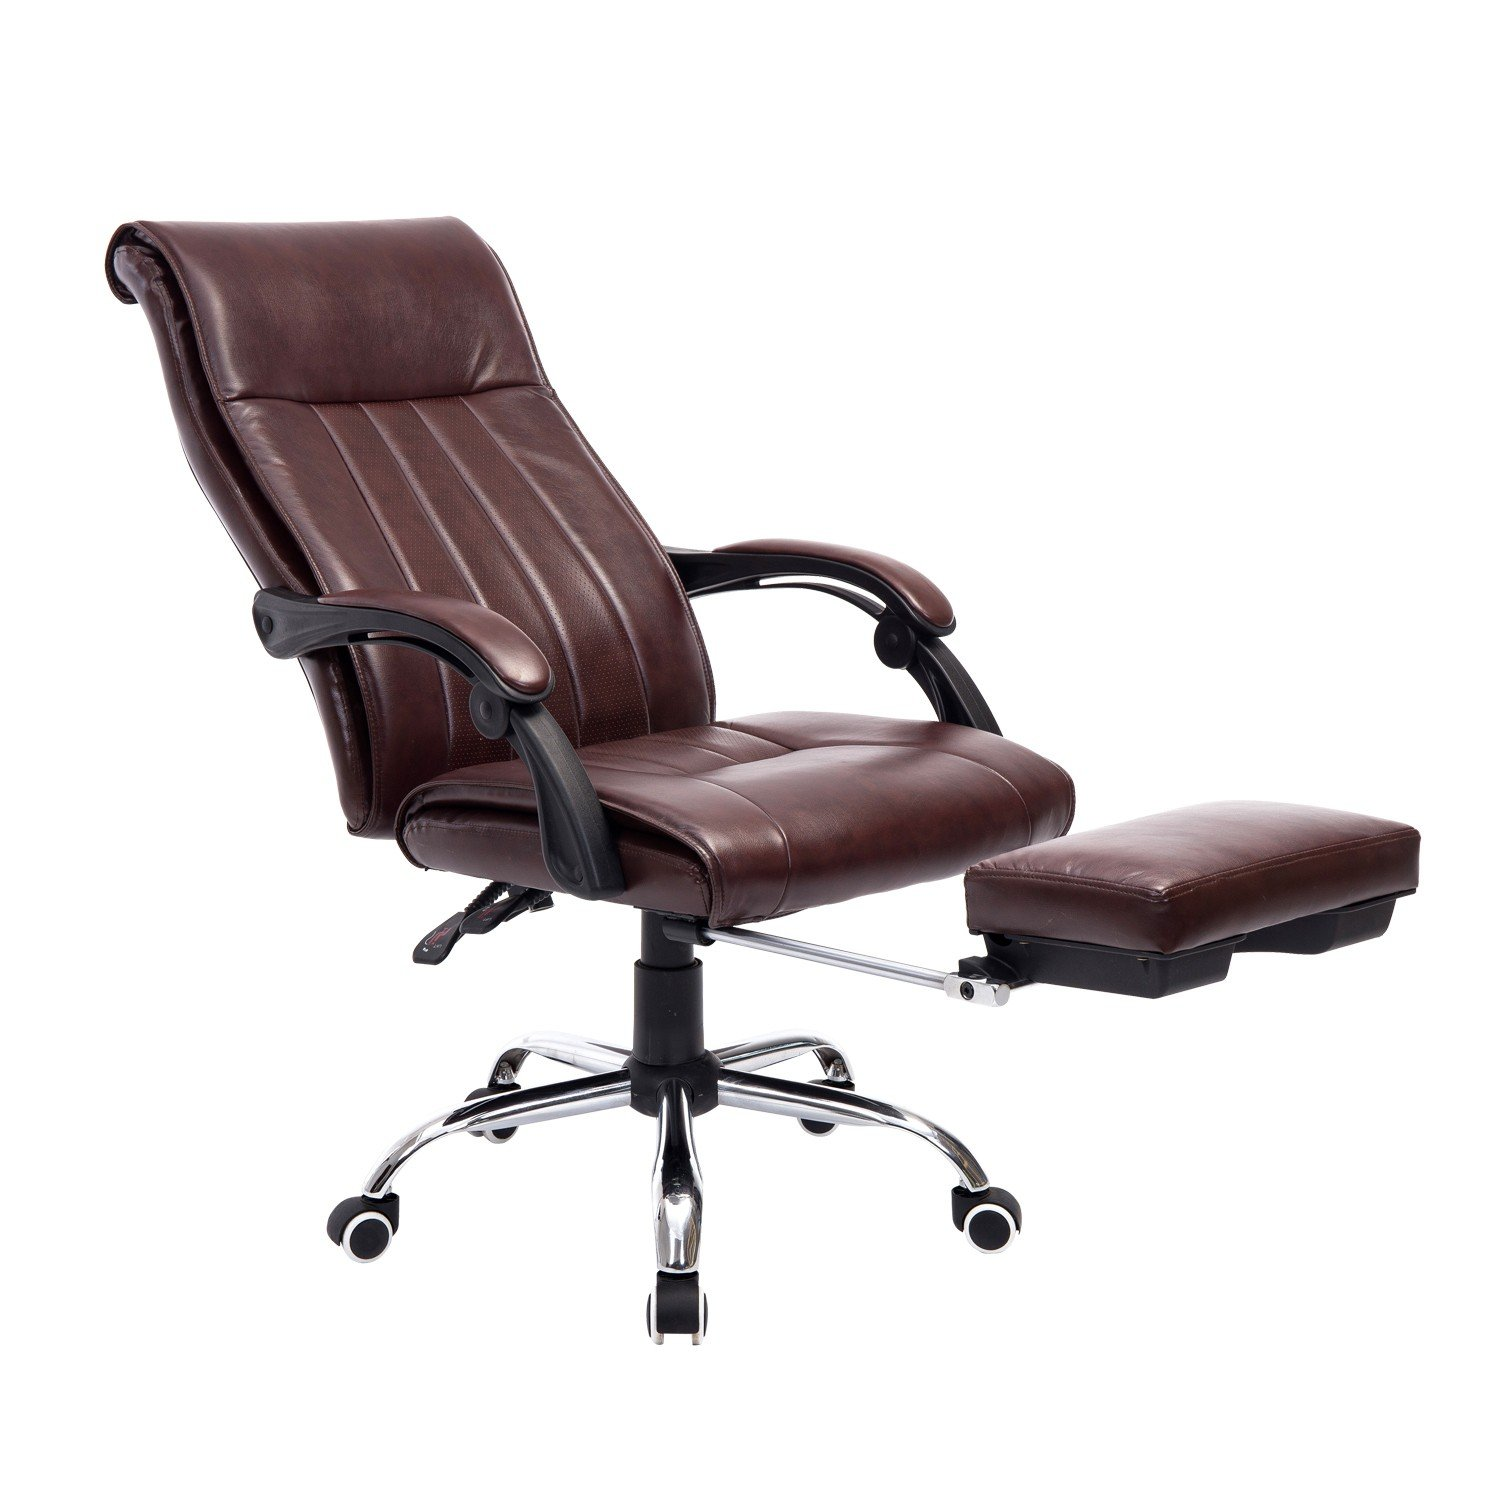 Office Chair Footrest Modern Reclining Adjustable Swivel Office Chair With Footrest